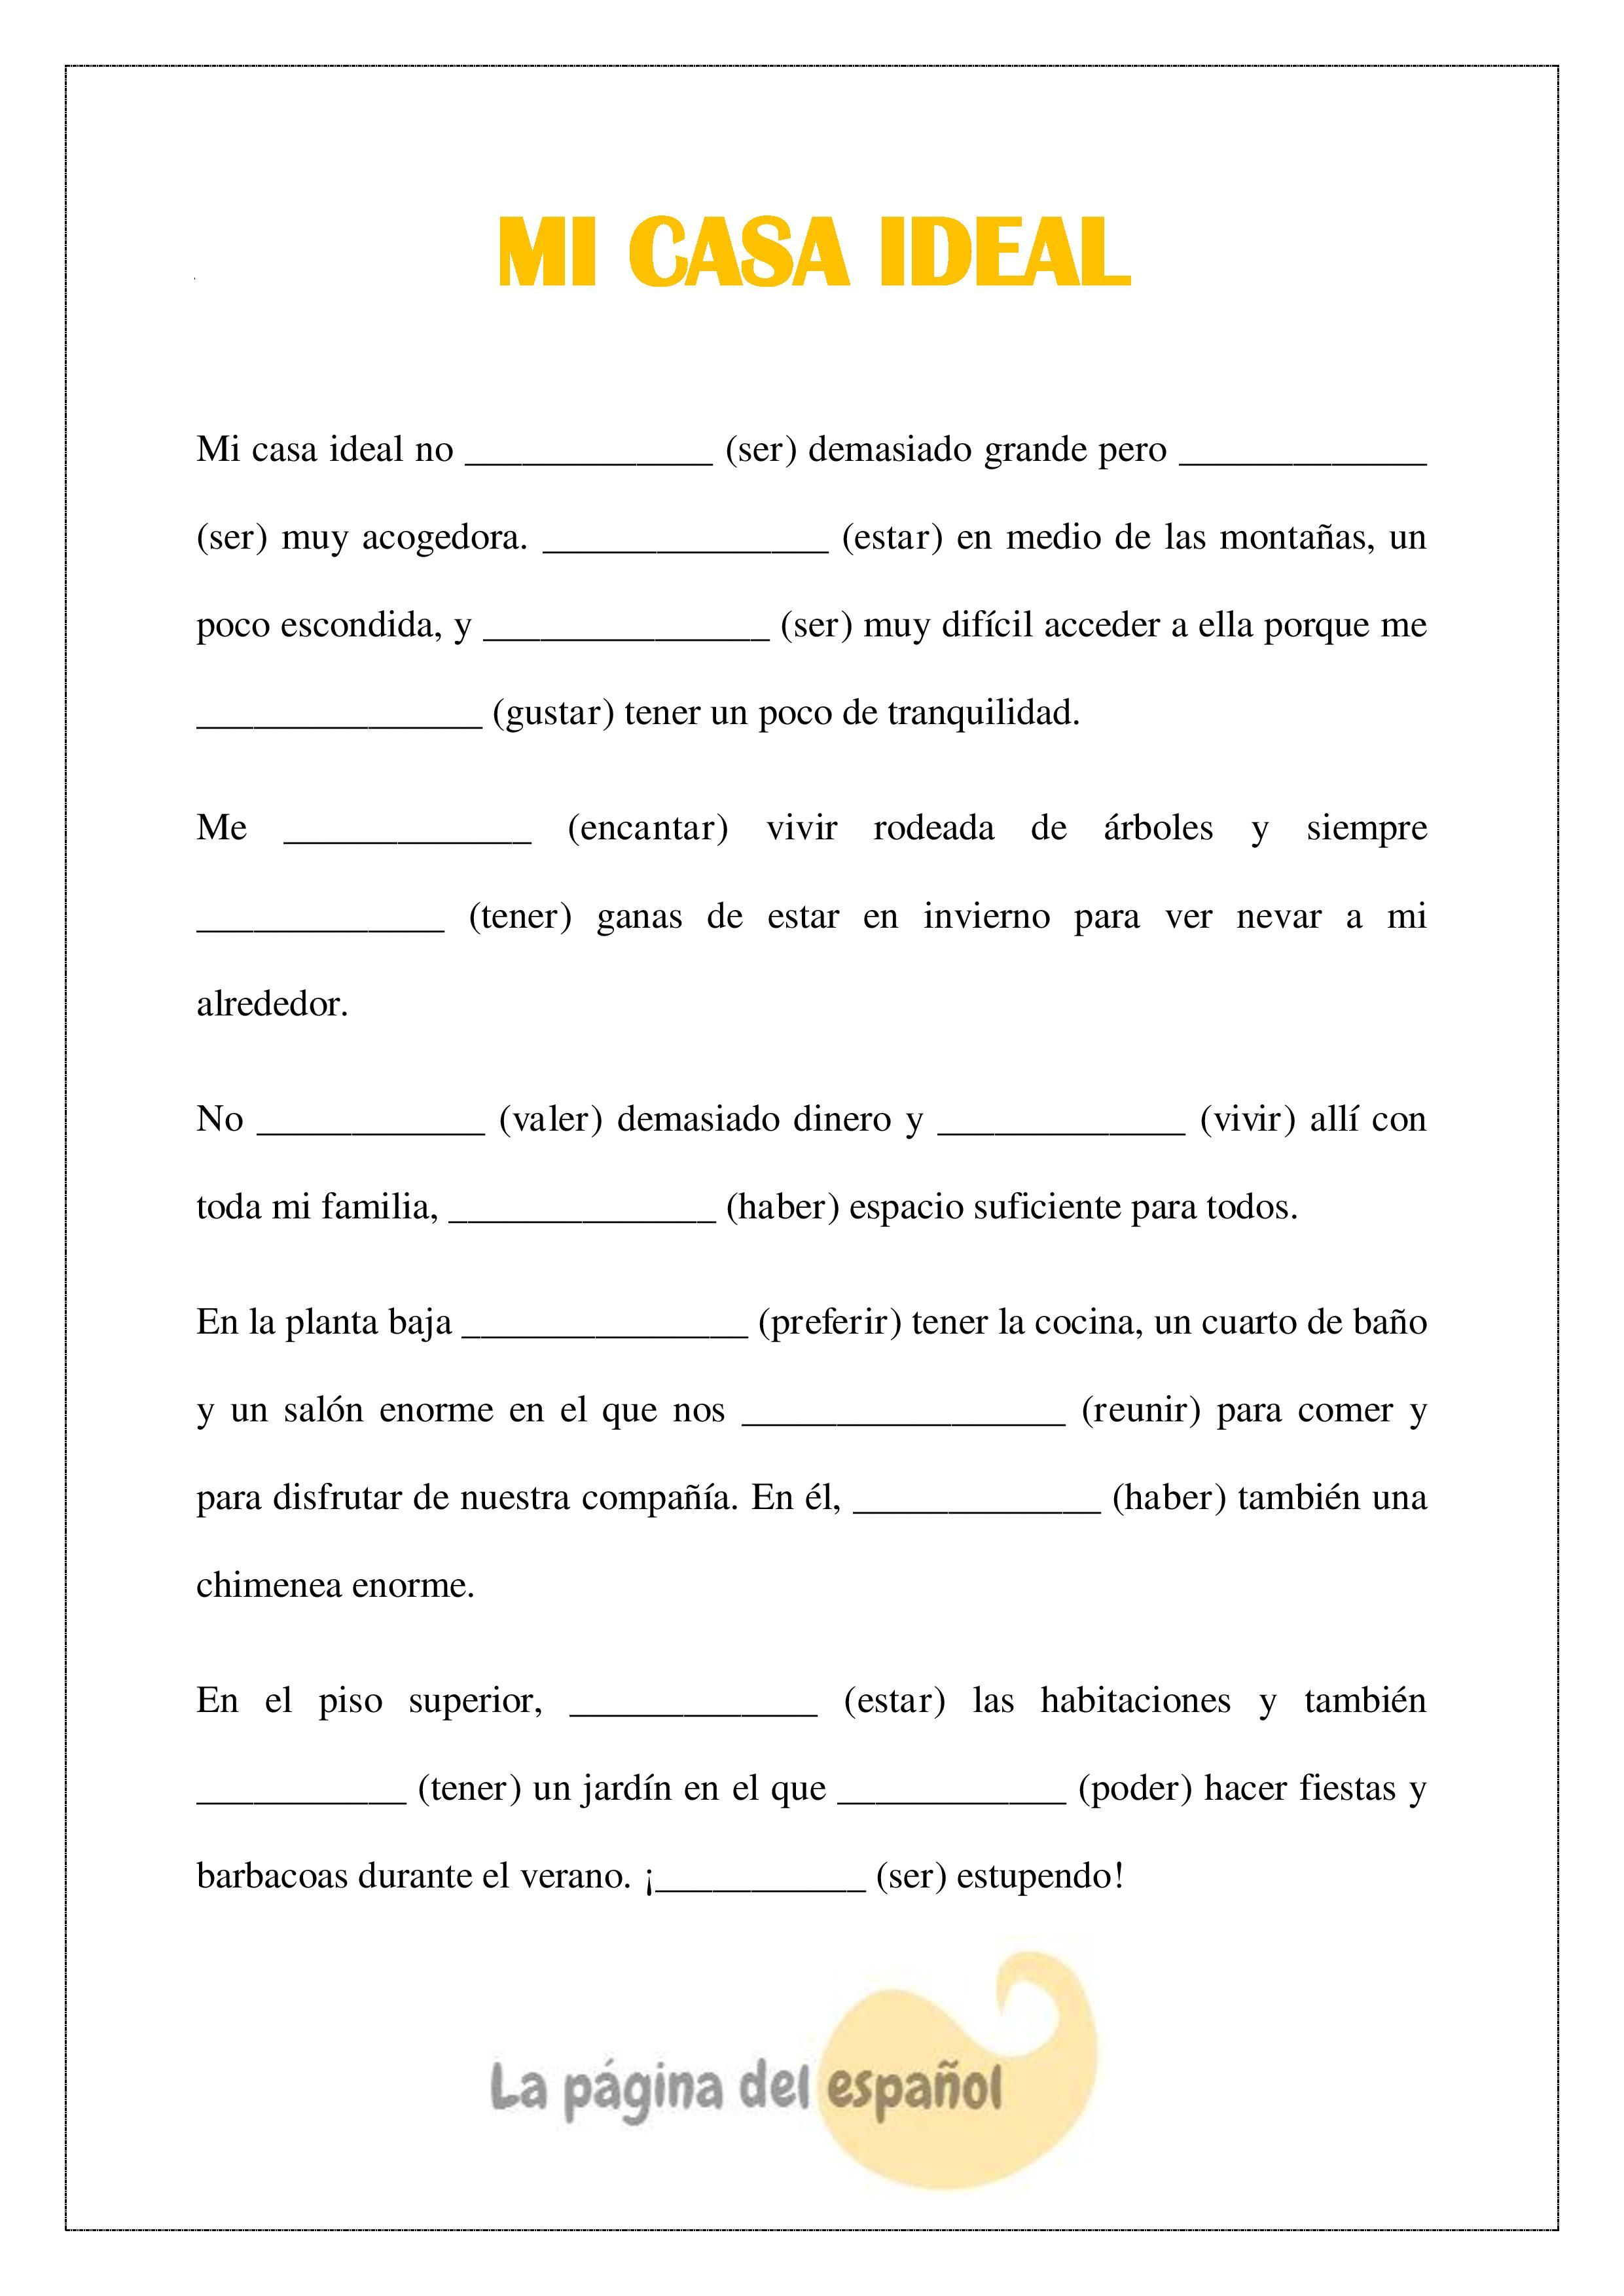 worksheet Subjunctive Spanish Worksheet an activity to practice conditional tense italian pinterest mi casa ideal puedes poner los verbos en condicional modify for spanish 1